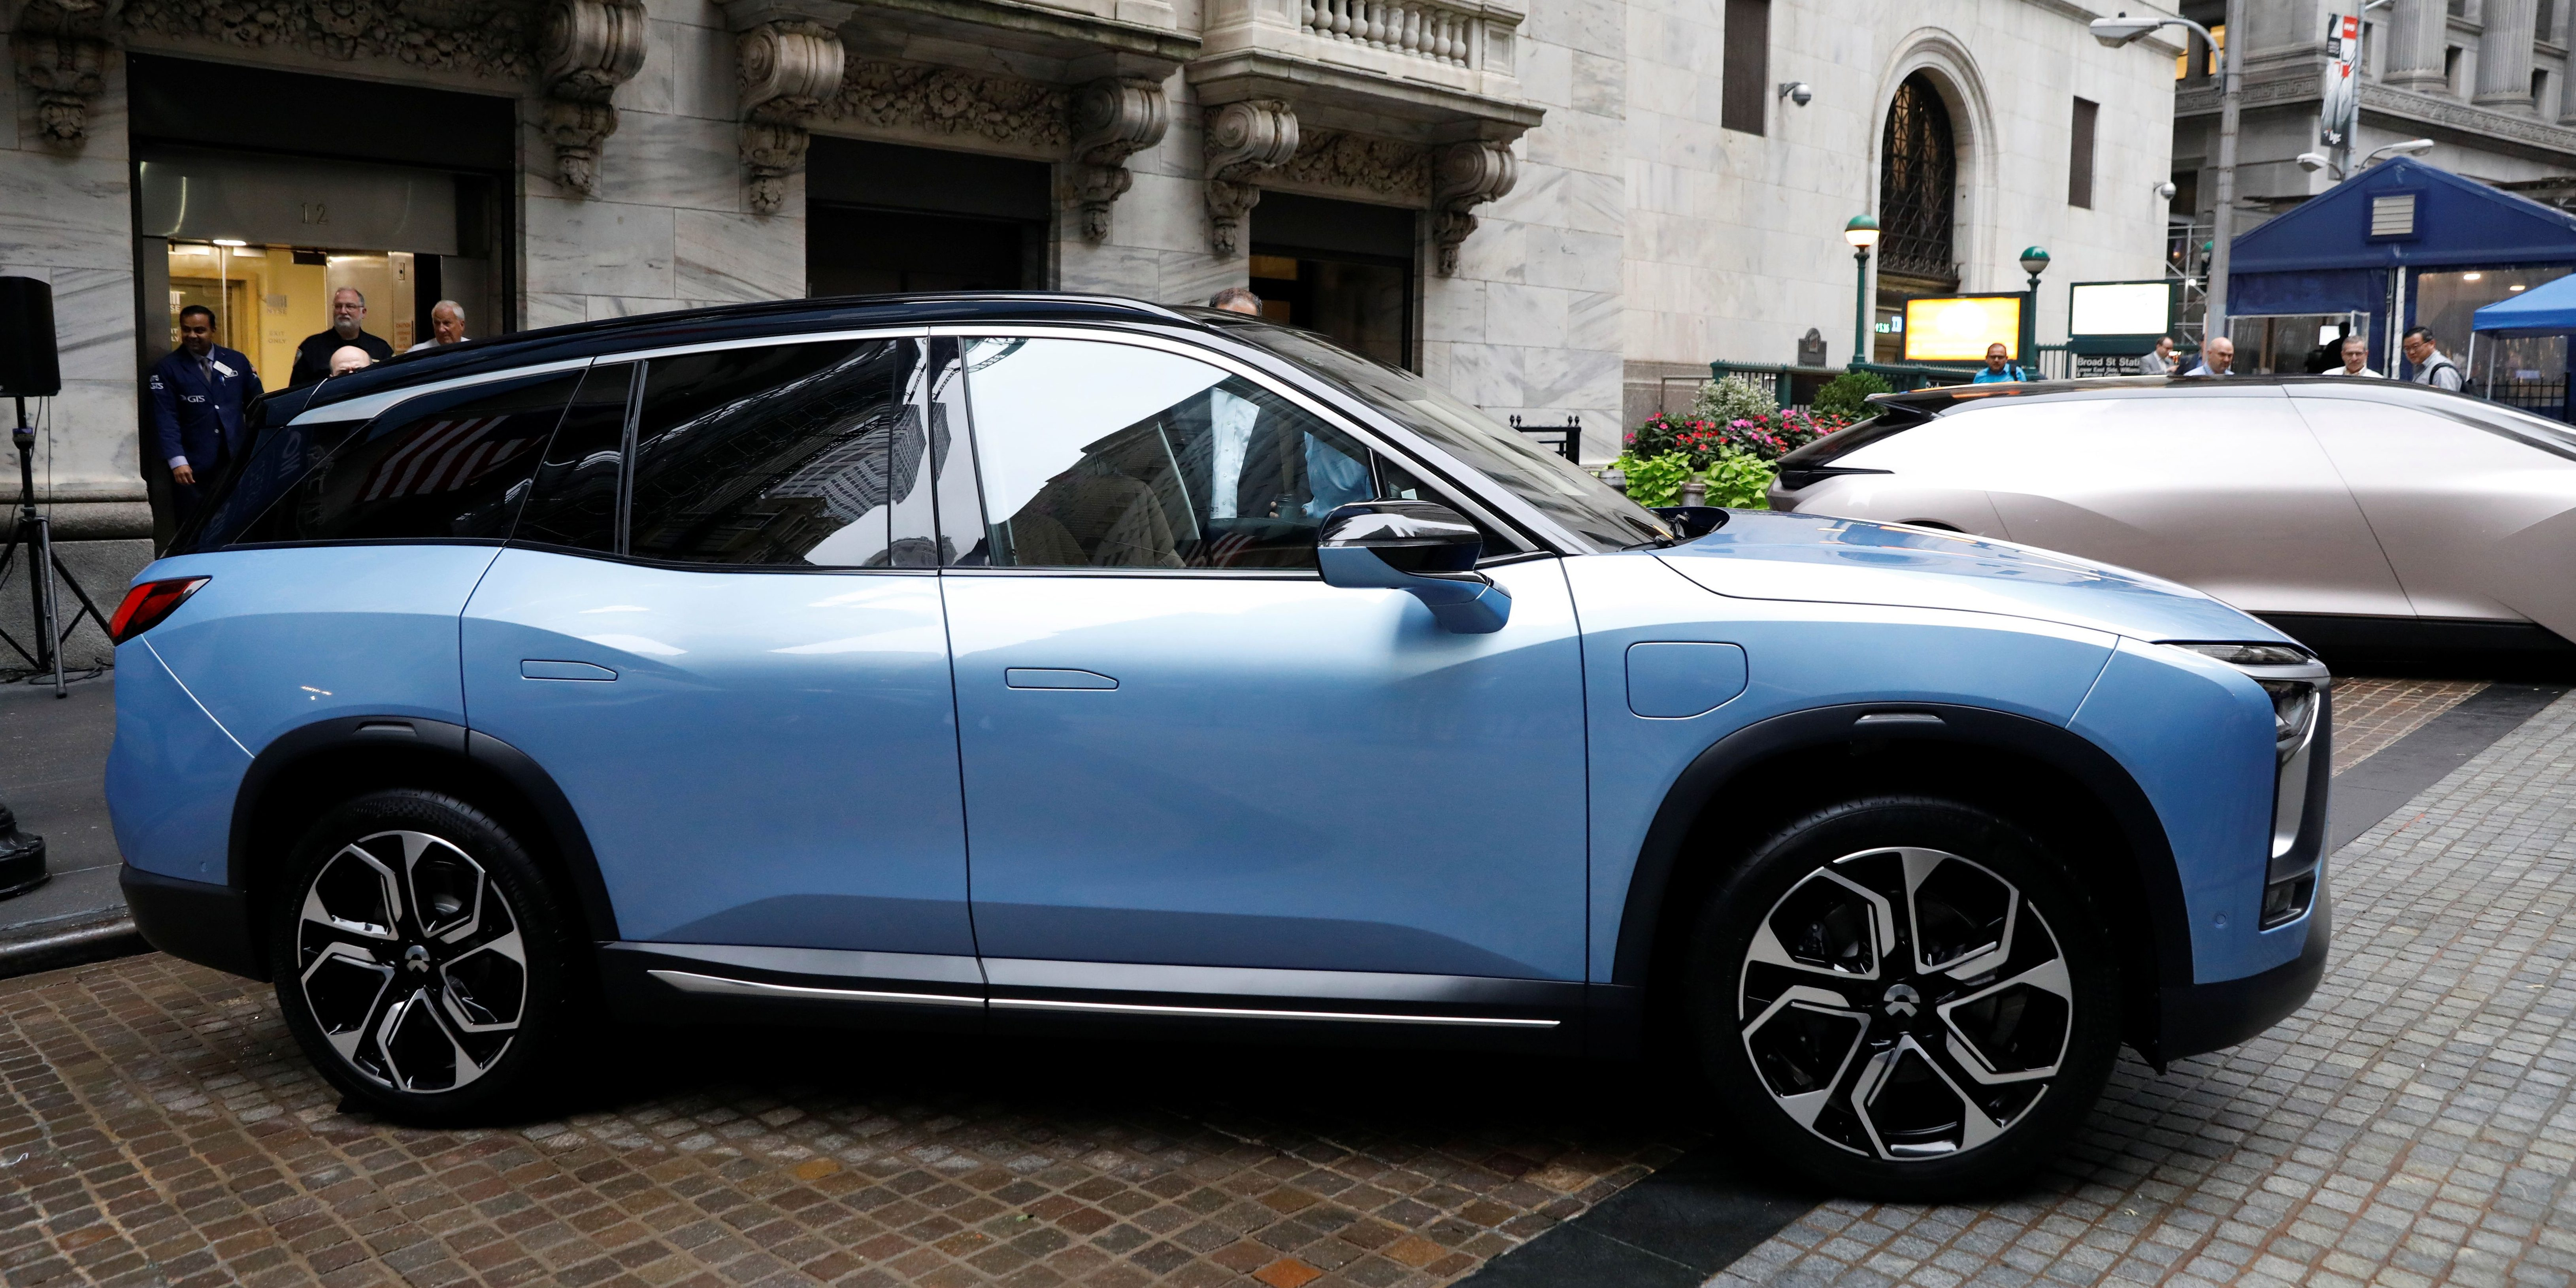 Chinese electric vehicle start-up Nio Inc. vehicles are on display in front of the New York Stock Exchange (NYSE) to celebrate the company's initial public offering (IPO) in New York, U.S., September 12, 2018. REUTERS/Brendan McDermid